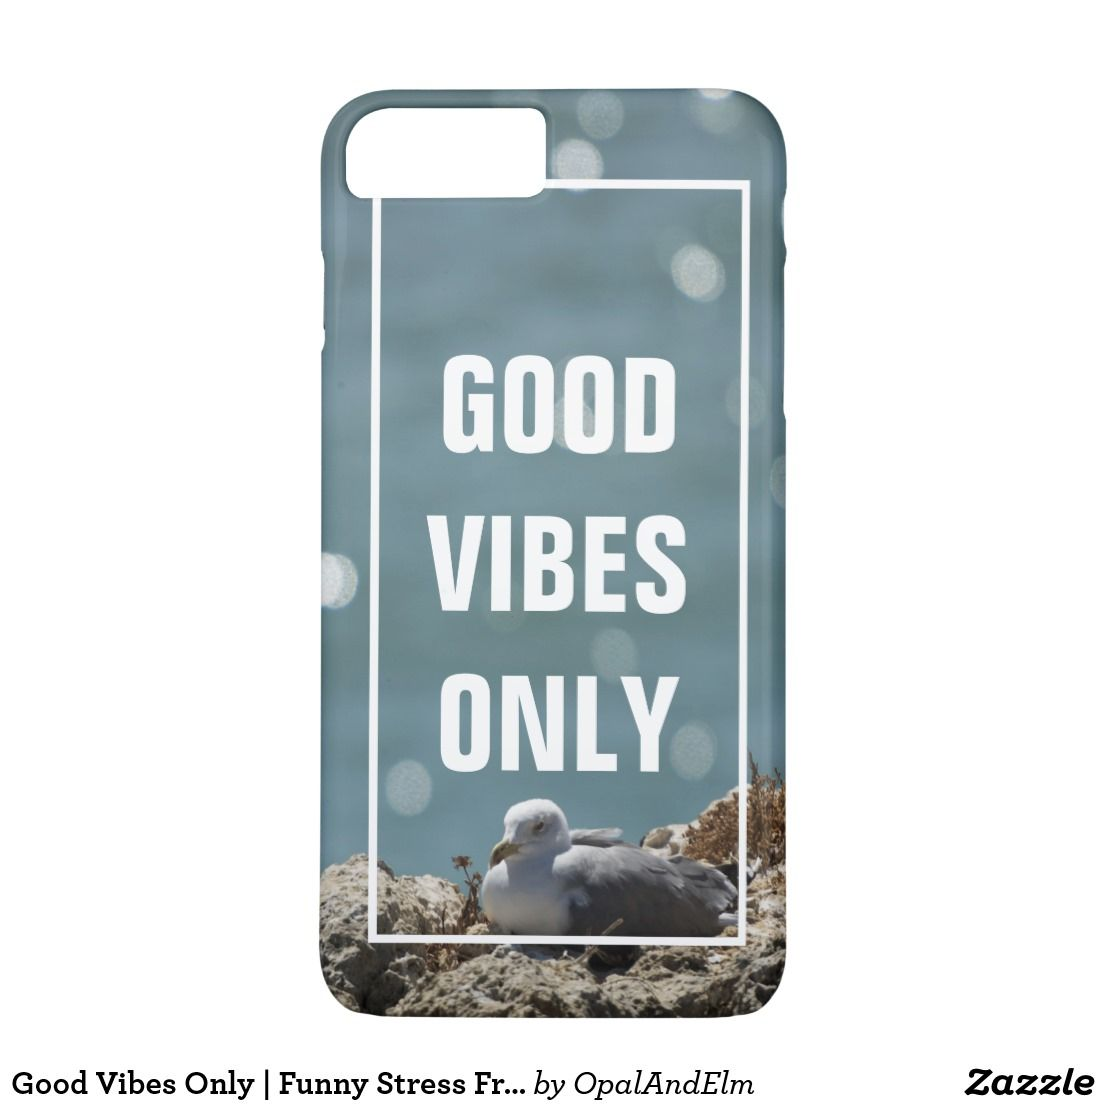 Funny Stress Quotes Good Vibes Only   Funny Stress Free Quote Beach Case-Mate iPhone Case   Zazzle.com